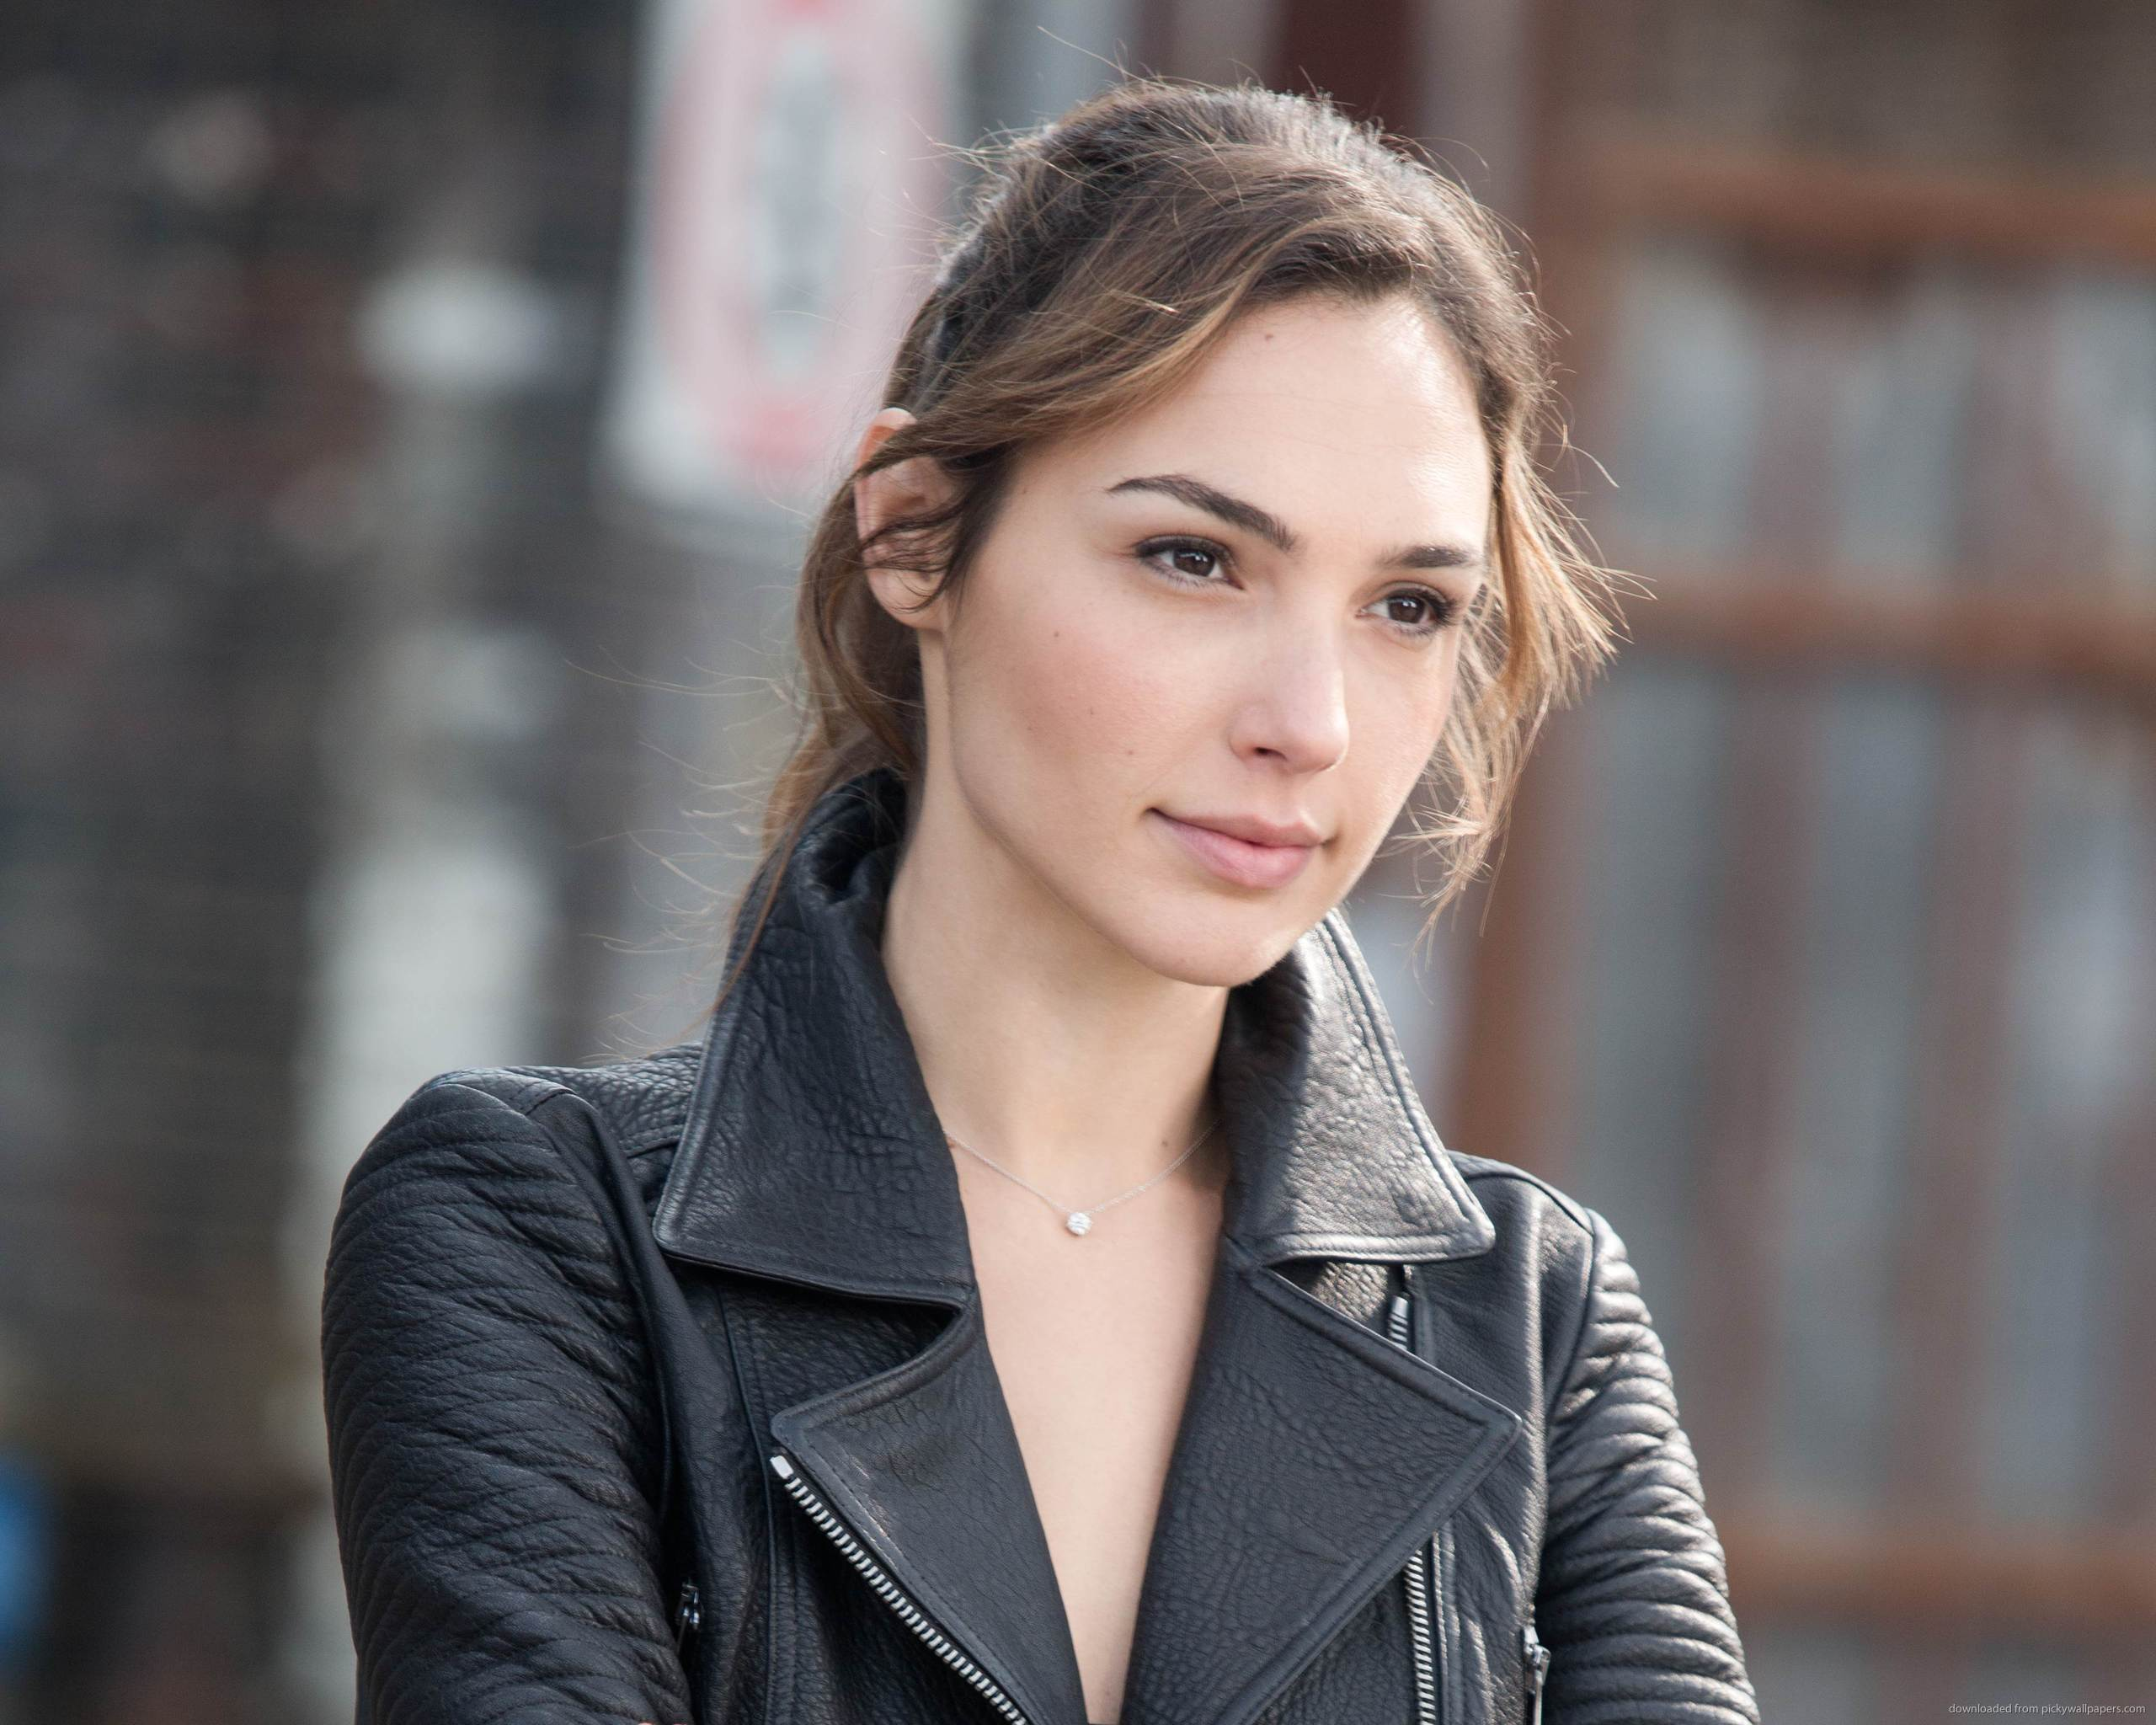 Gal Gadot to Star in Dwayne Johnson's Upcoming Film 'Red Notice'